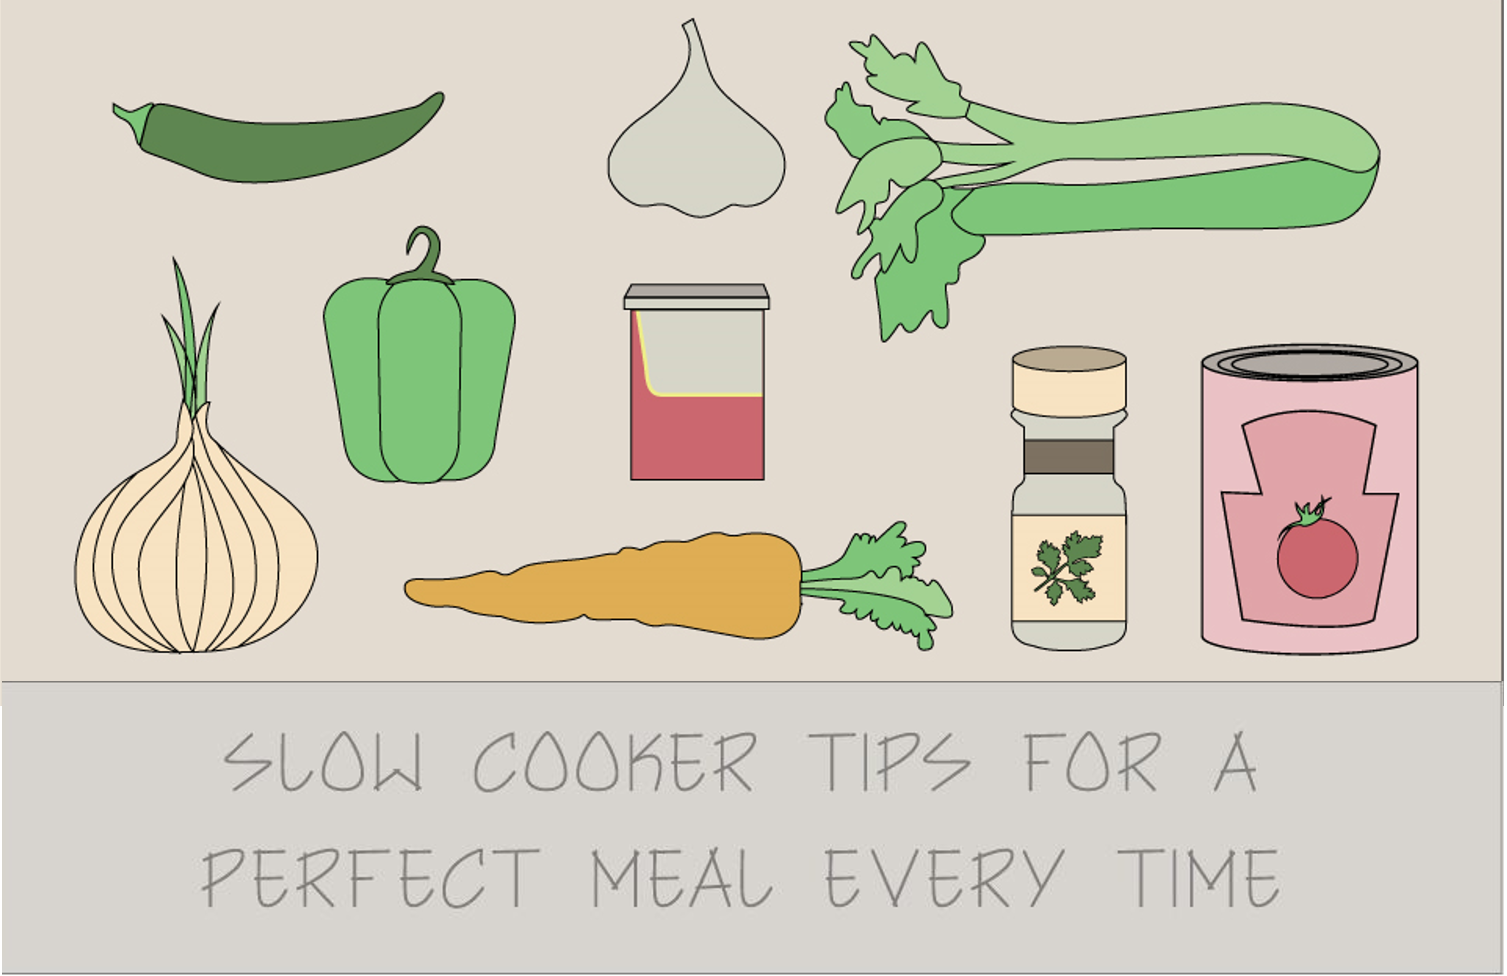 slow cooker tips and healthy recipes